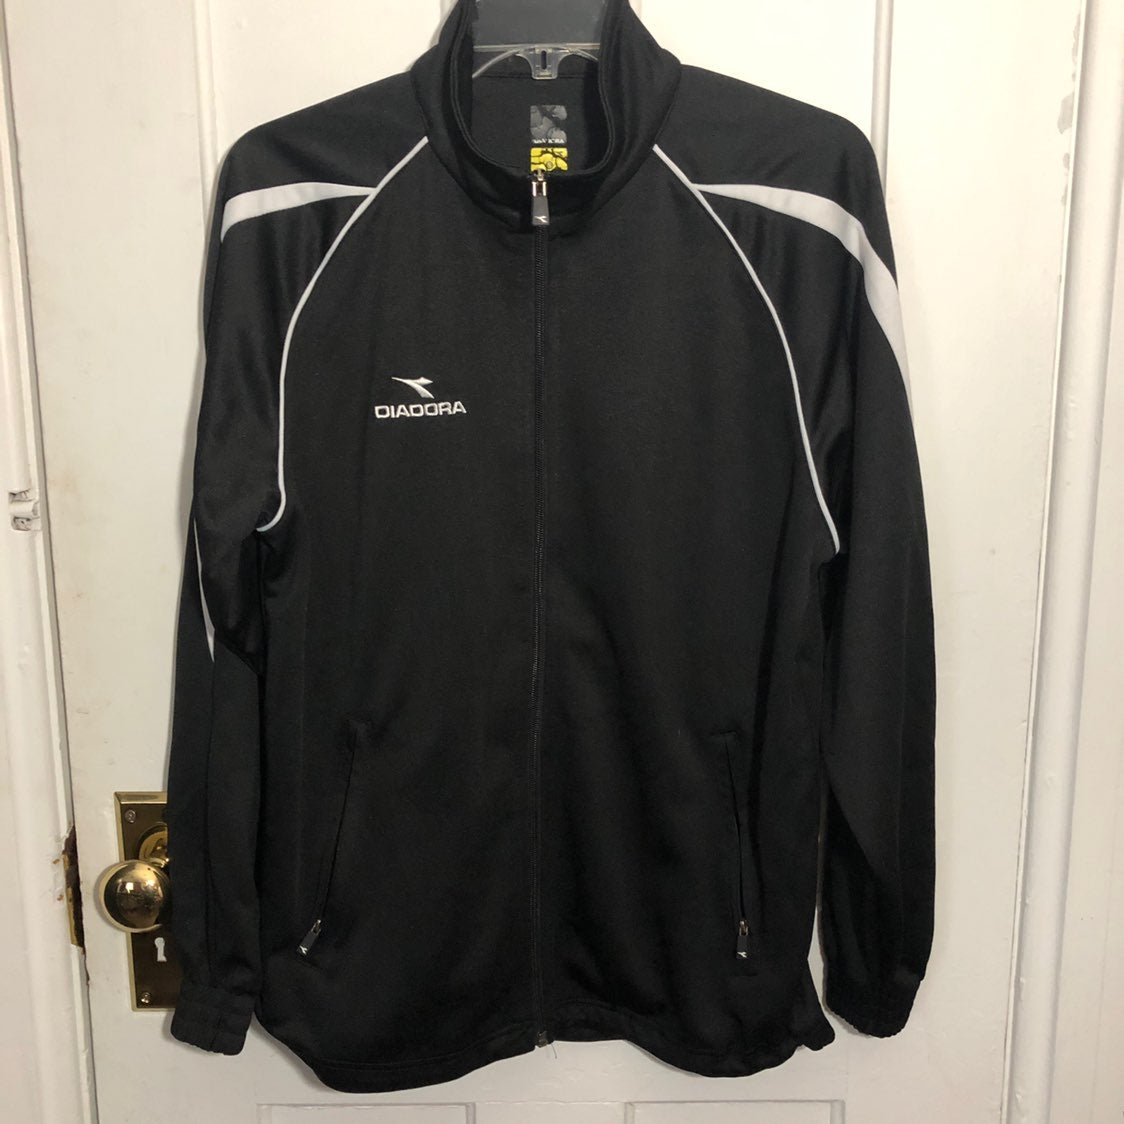 Diadora Jacket Size S Black Full Zip